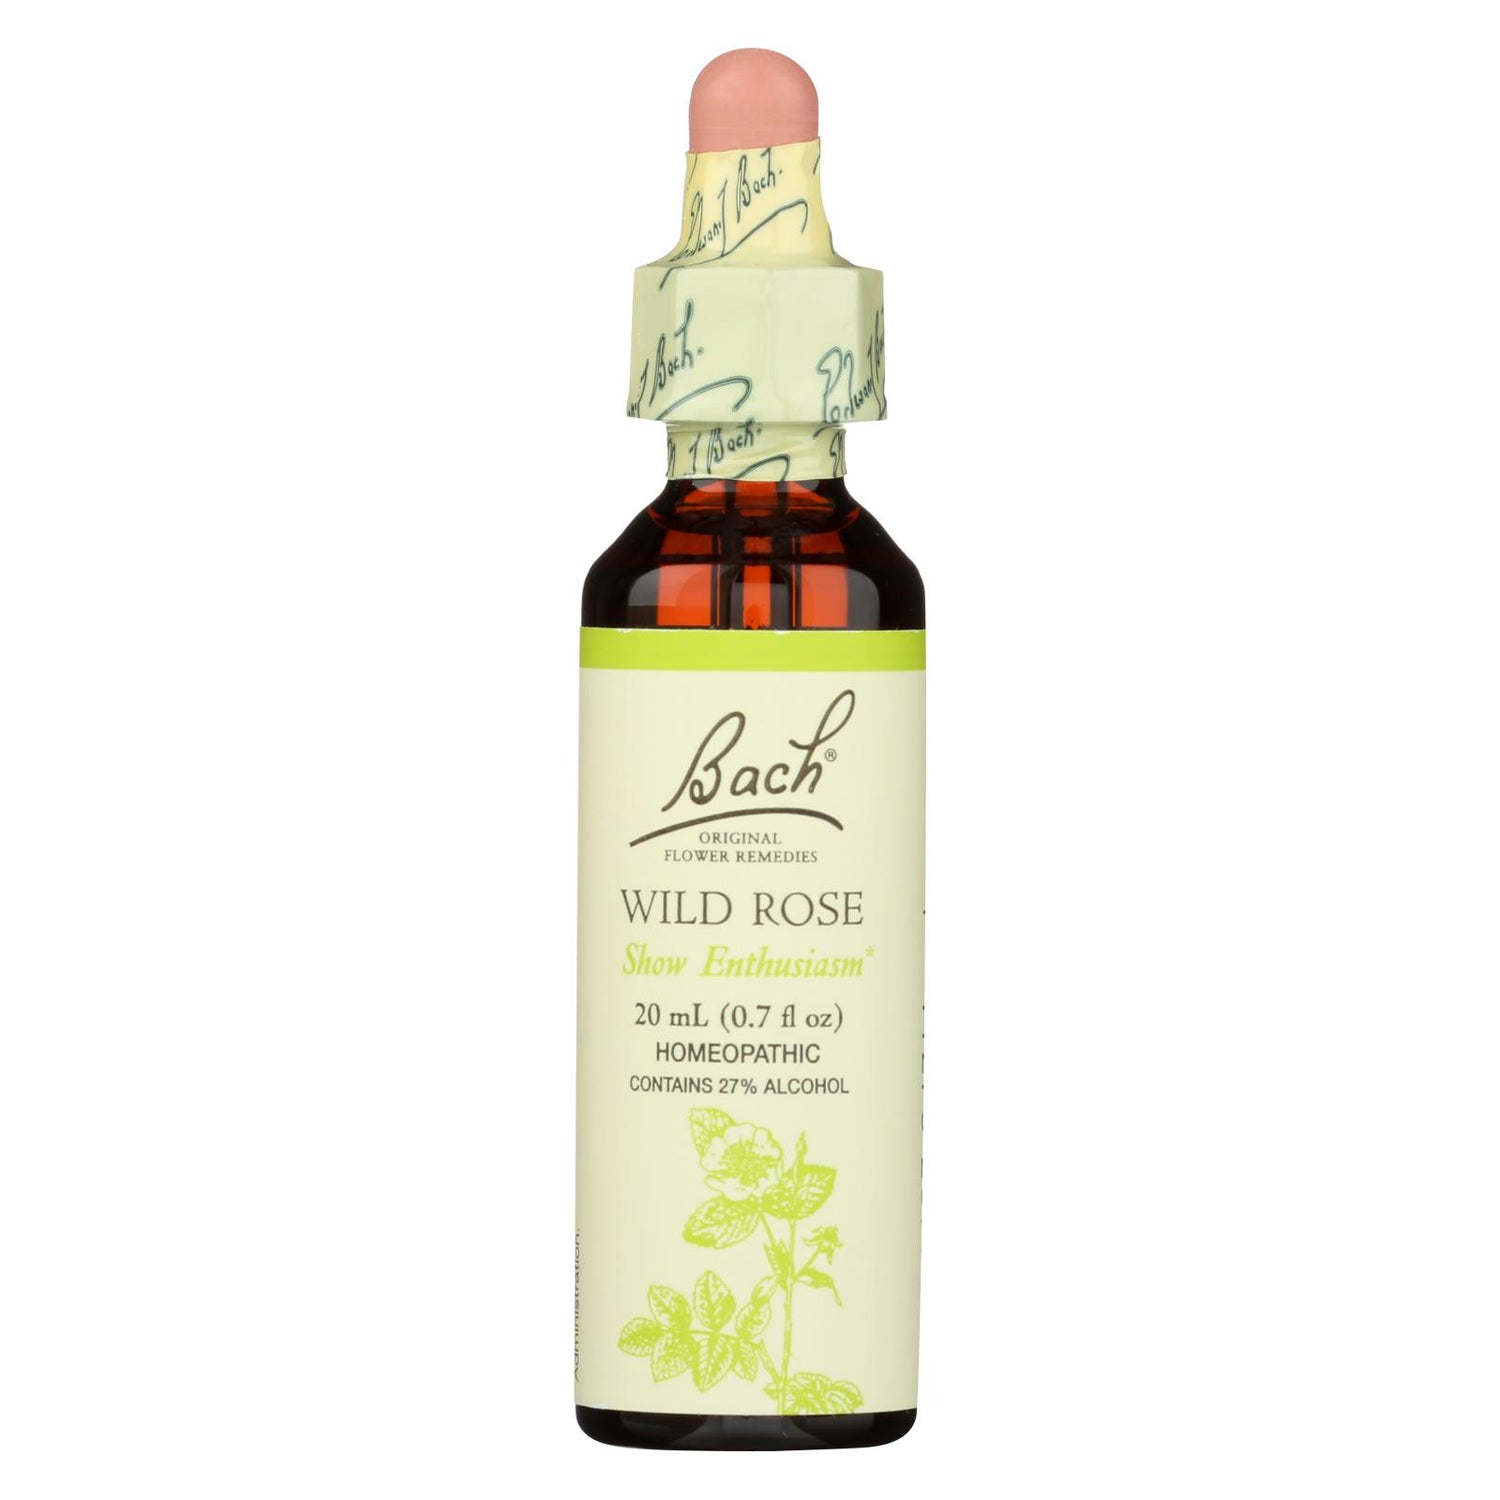 Bach Flower Remedies Essence Wild Rose - 0.7 Fl Oz